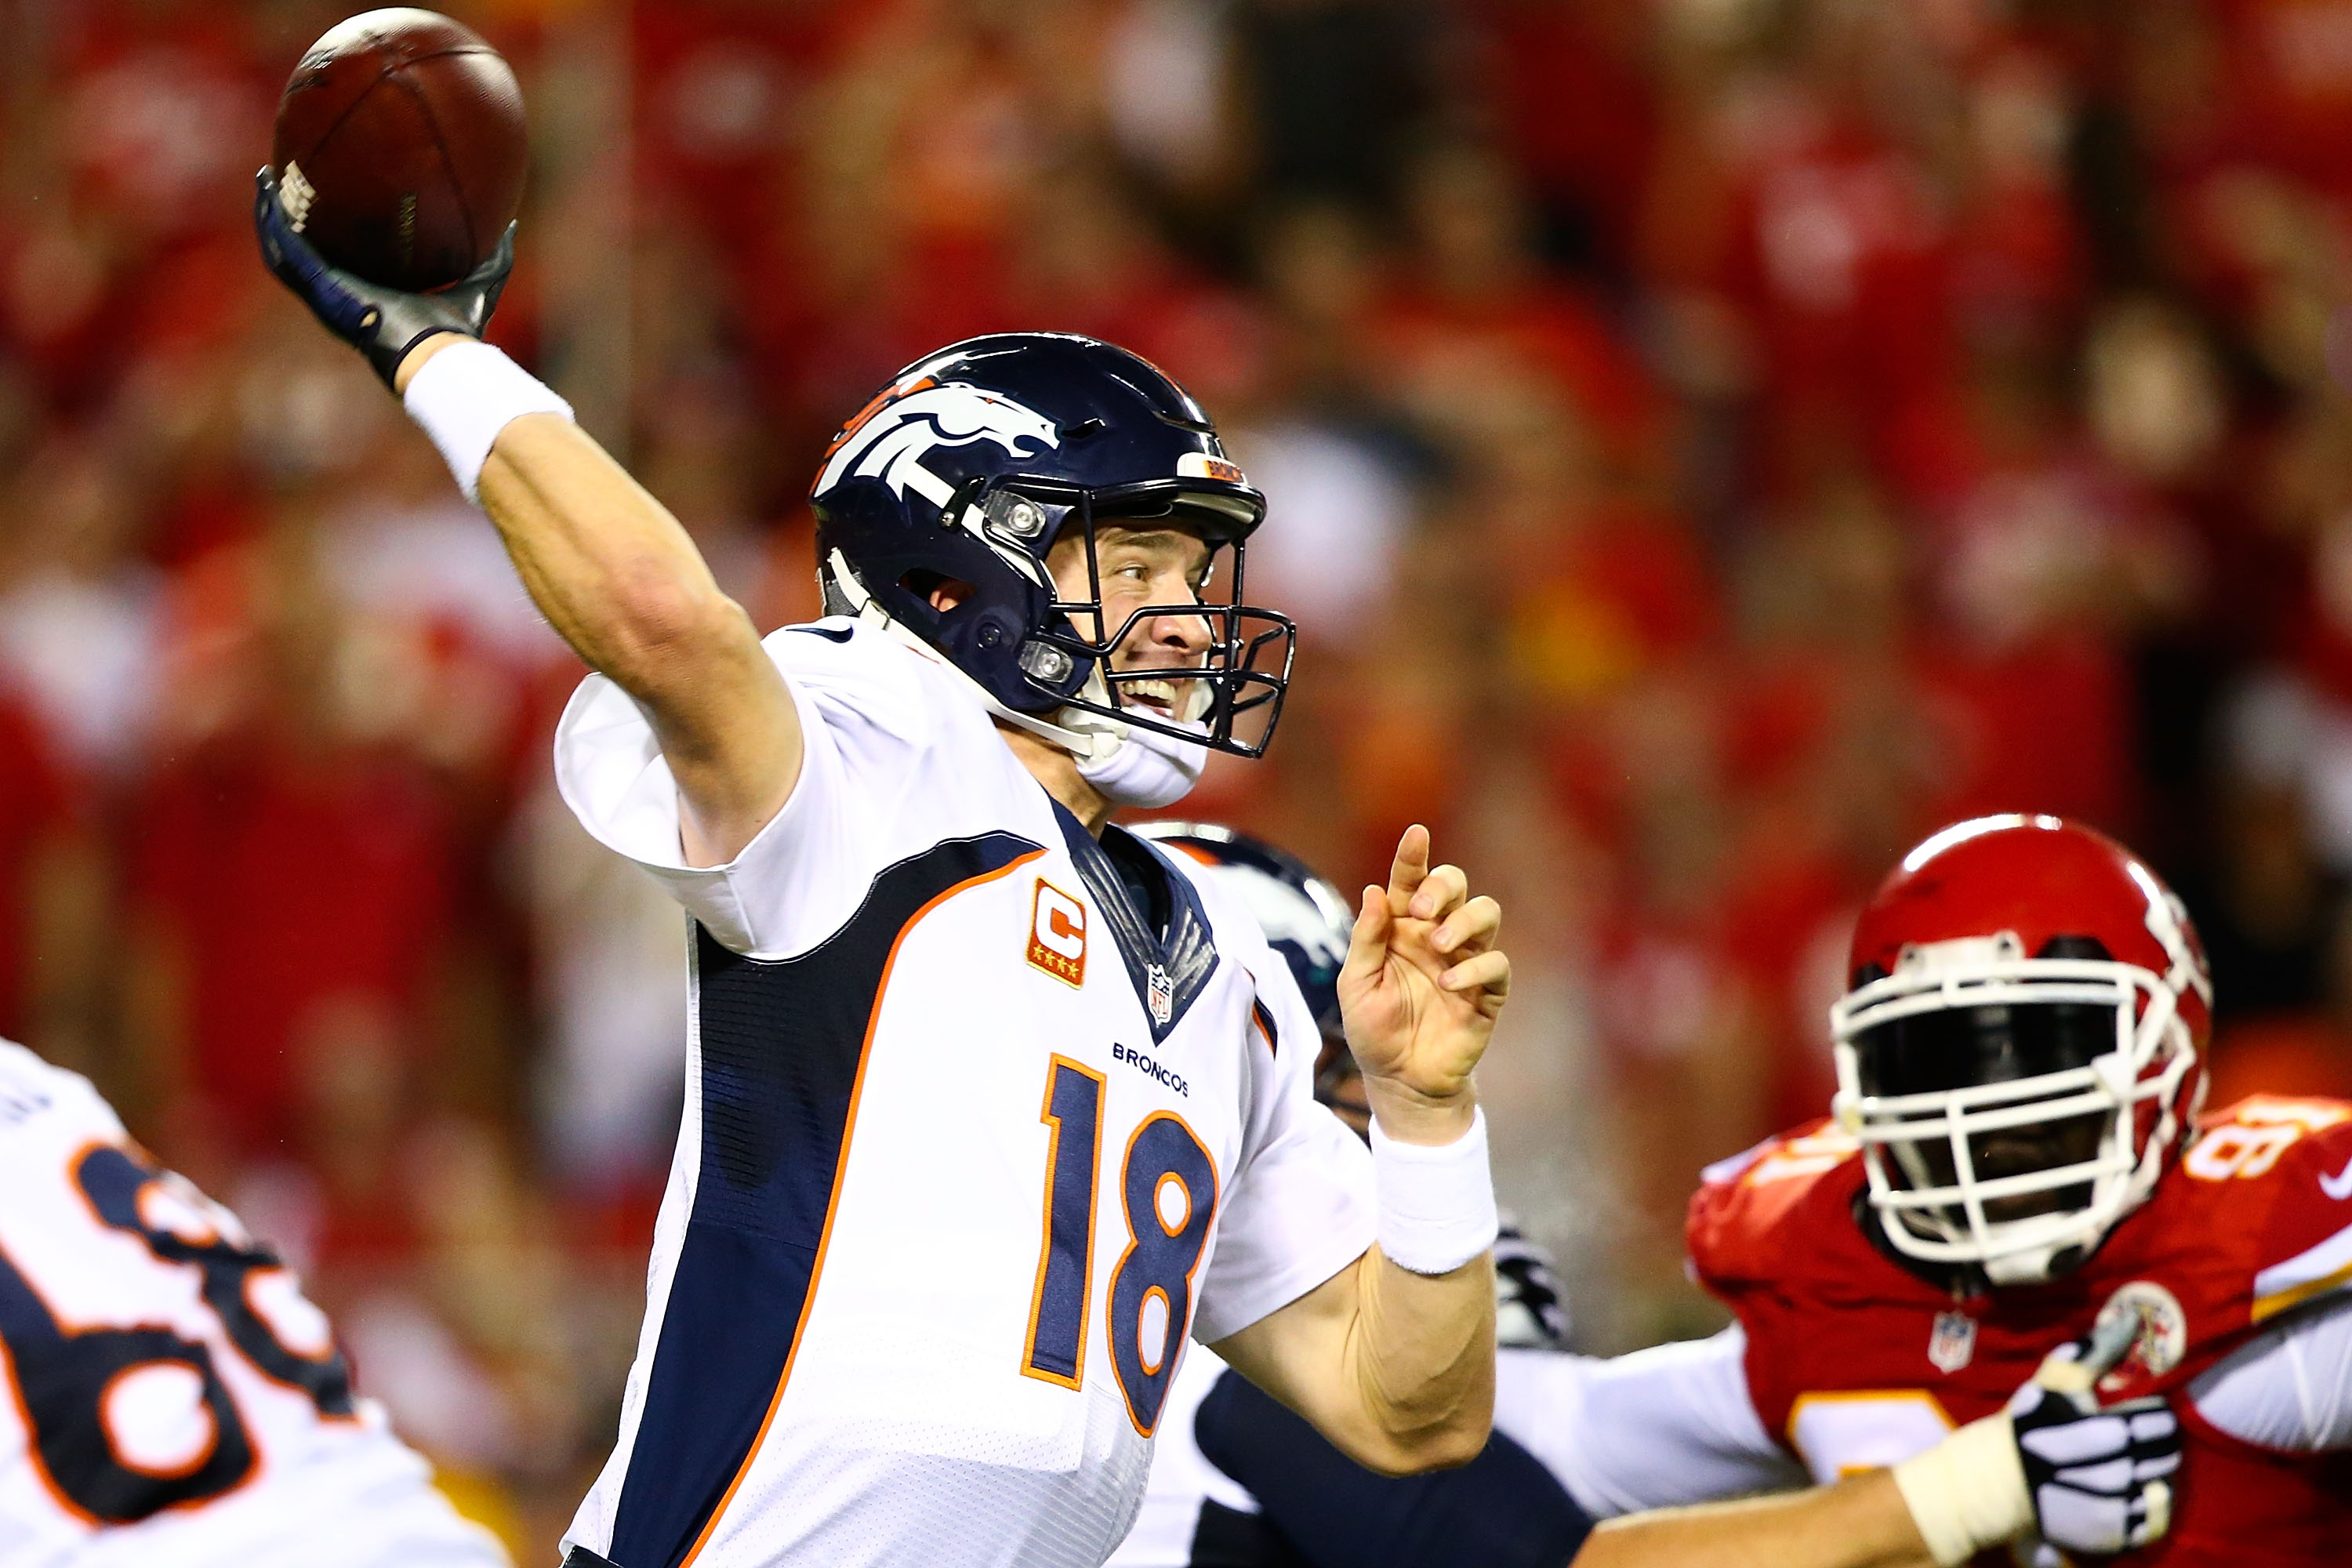 Peyton Manning #18 of the Denver Broncos throws a pass during the game against the Kansas City Chiefs at Arrowhead Stadium on Sept. 17, 2015 in Kansas City, Missouri